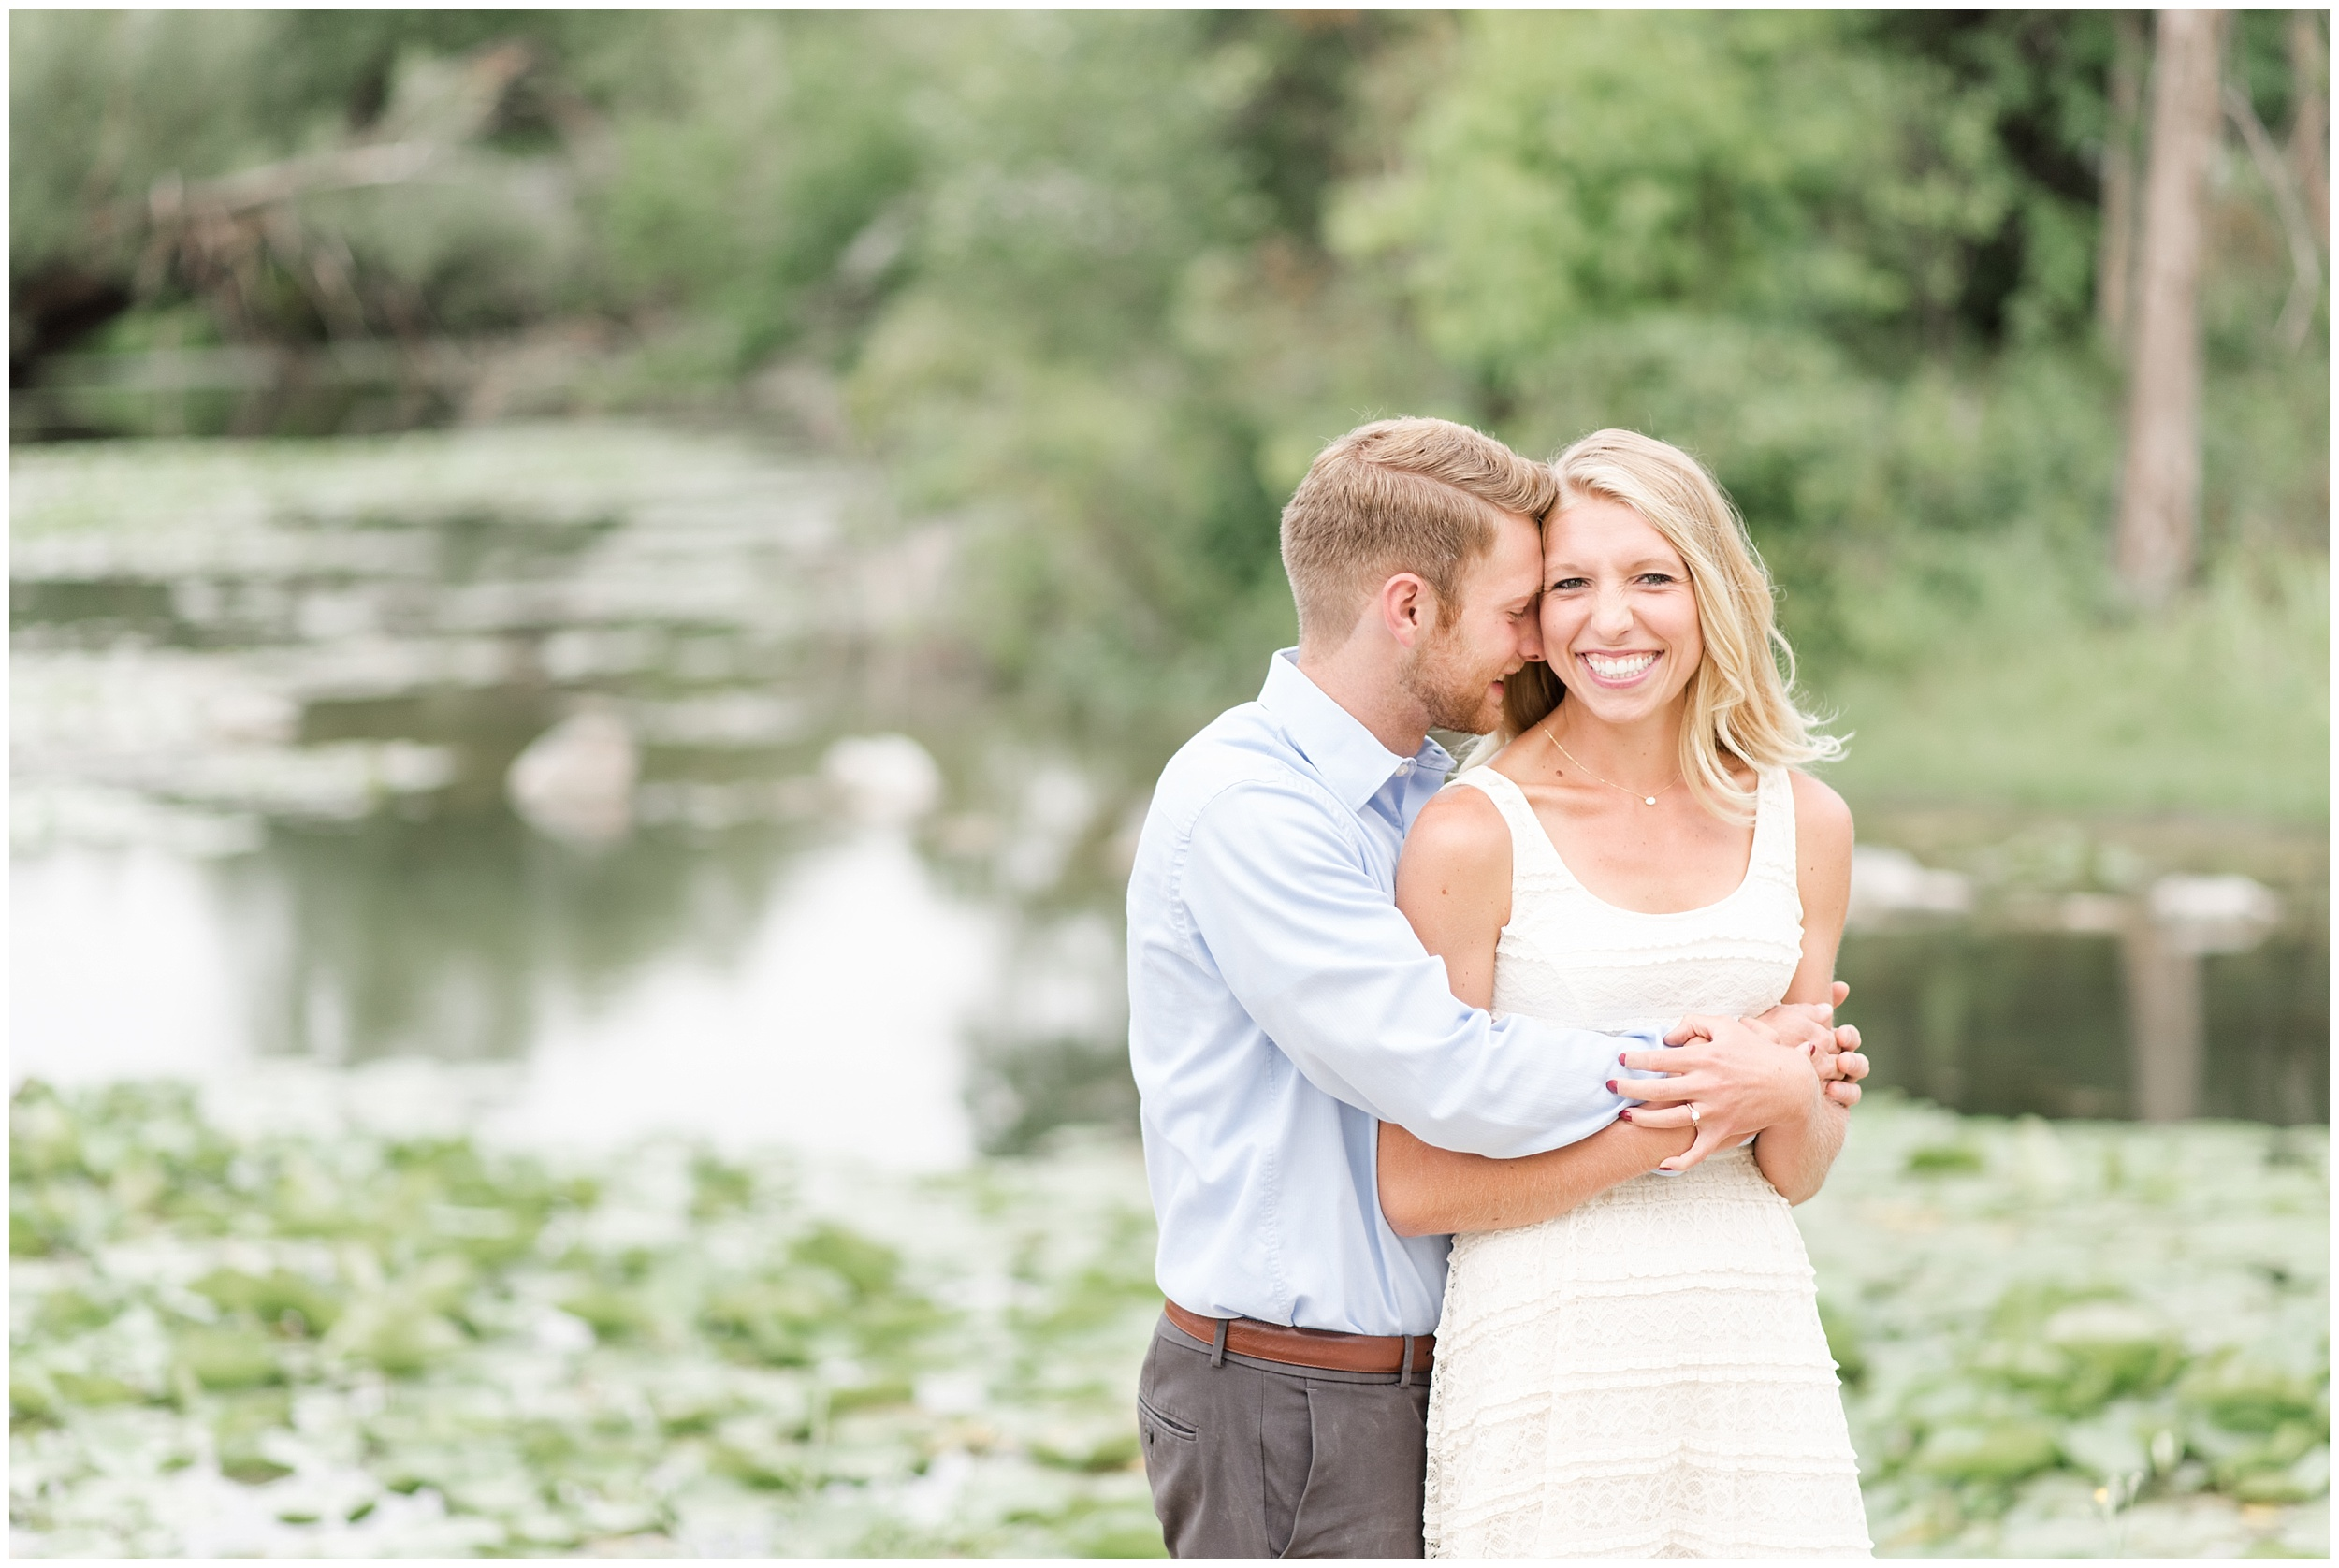 tenney-park-engagement-session-madison-wisconsin-bright-light-airy-wedding-photographer_0008.jpg